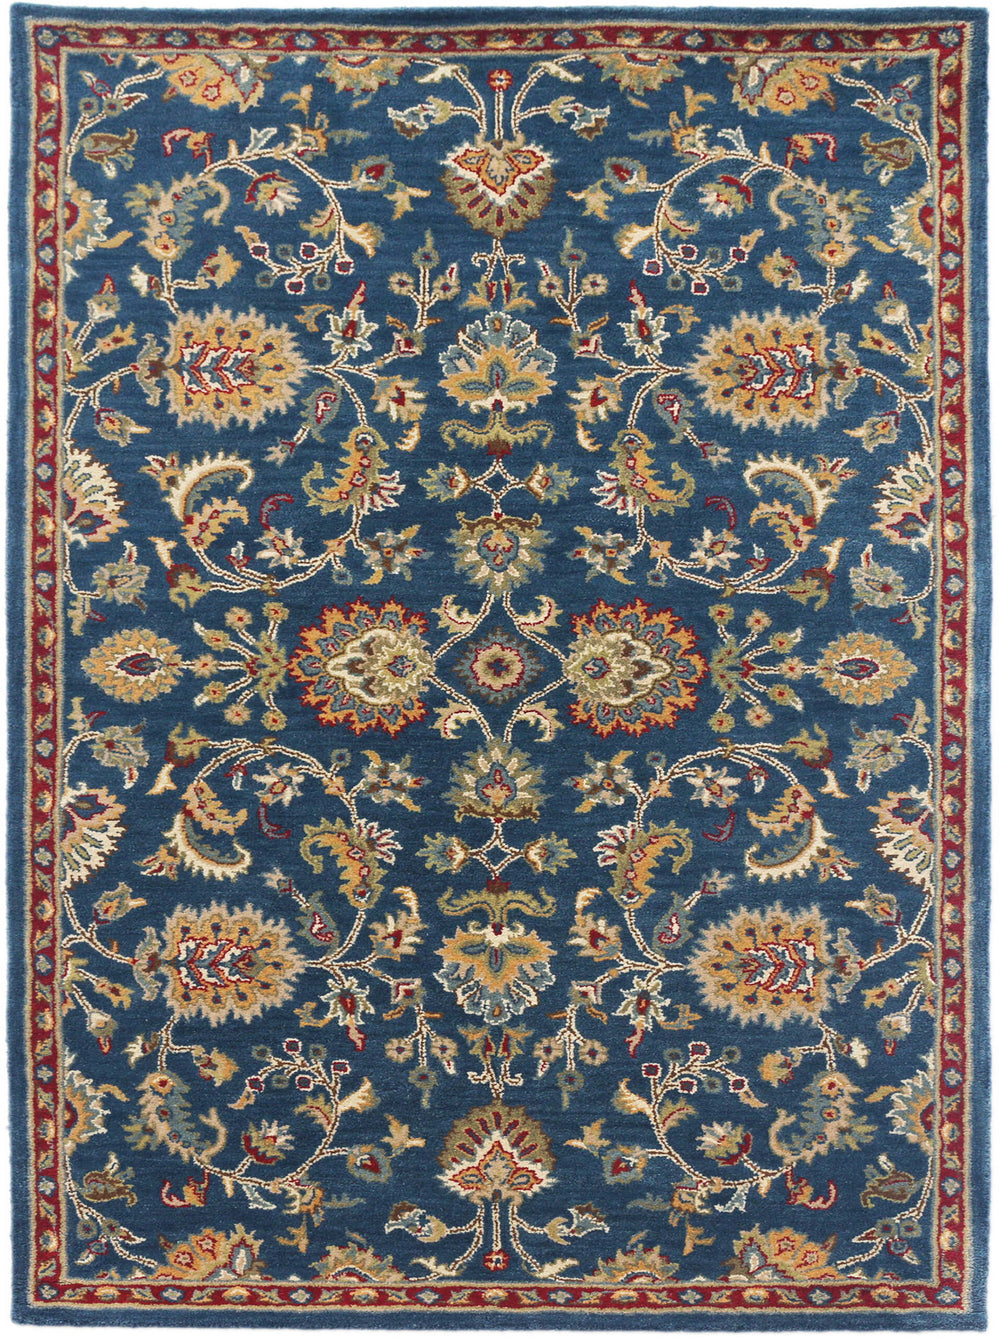 Amer Rugs Liberty Lib 3 Area Rug Rug Savings